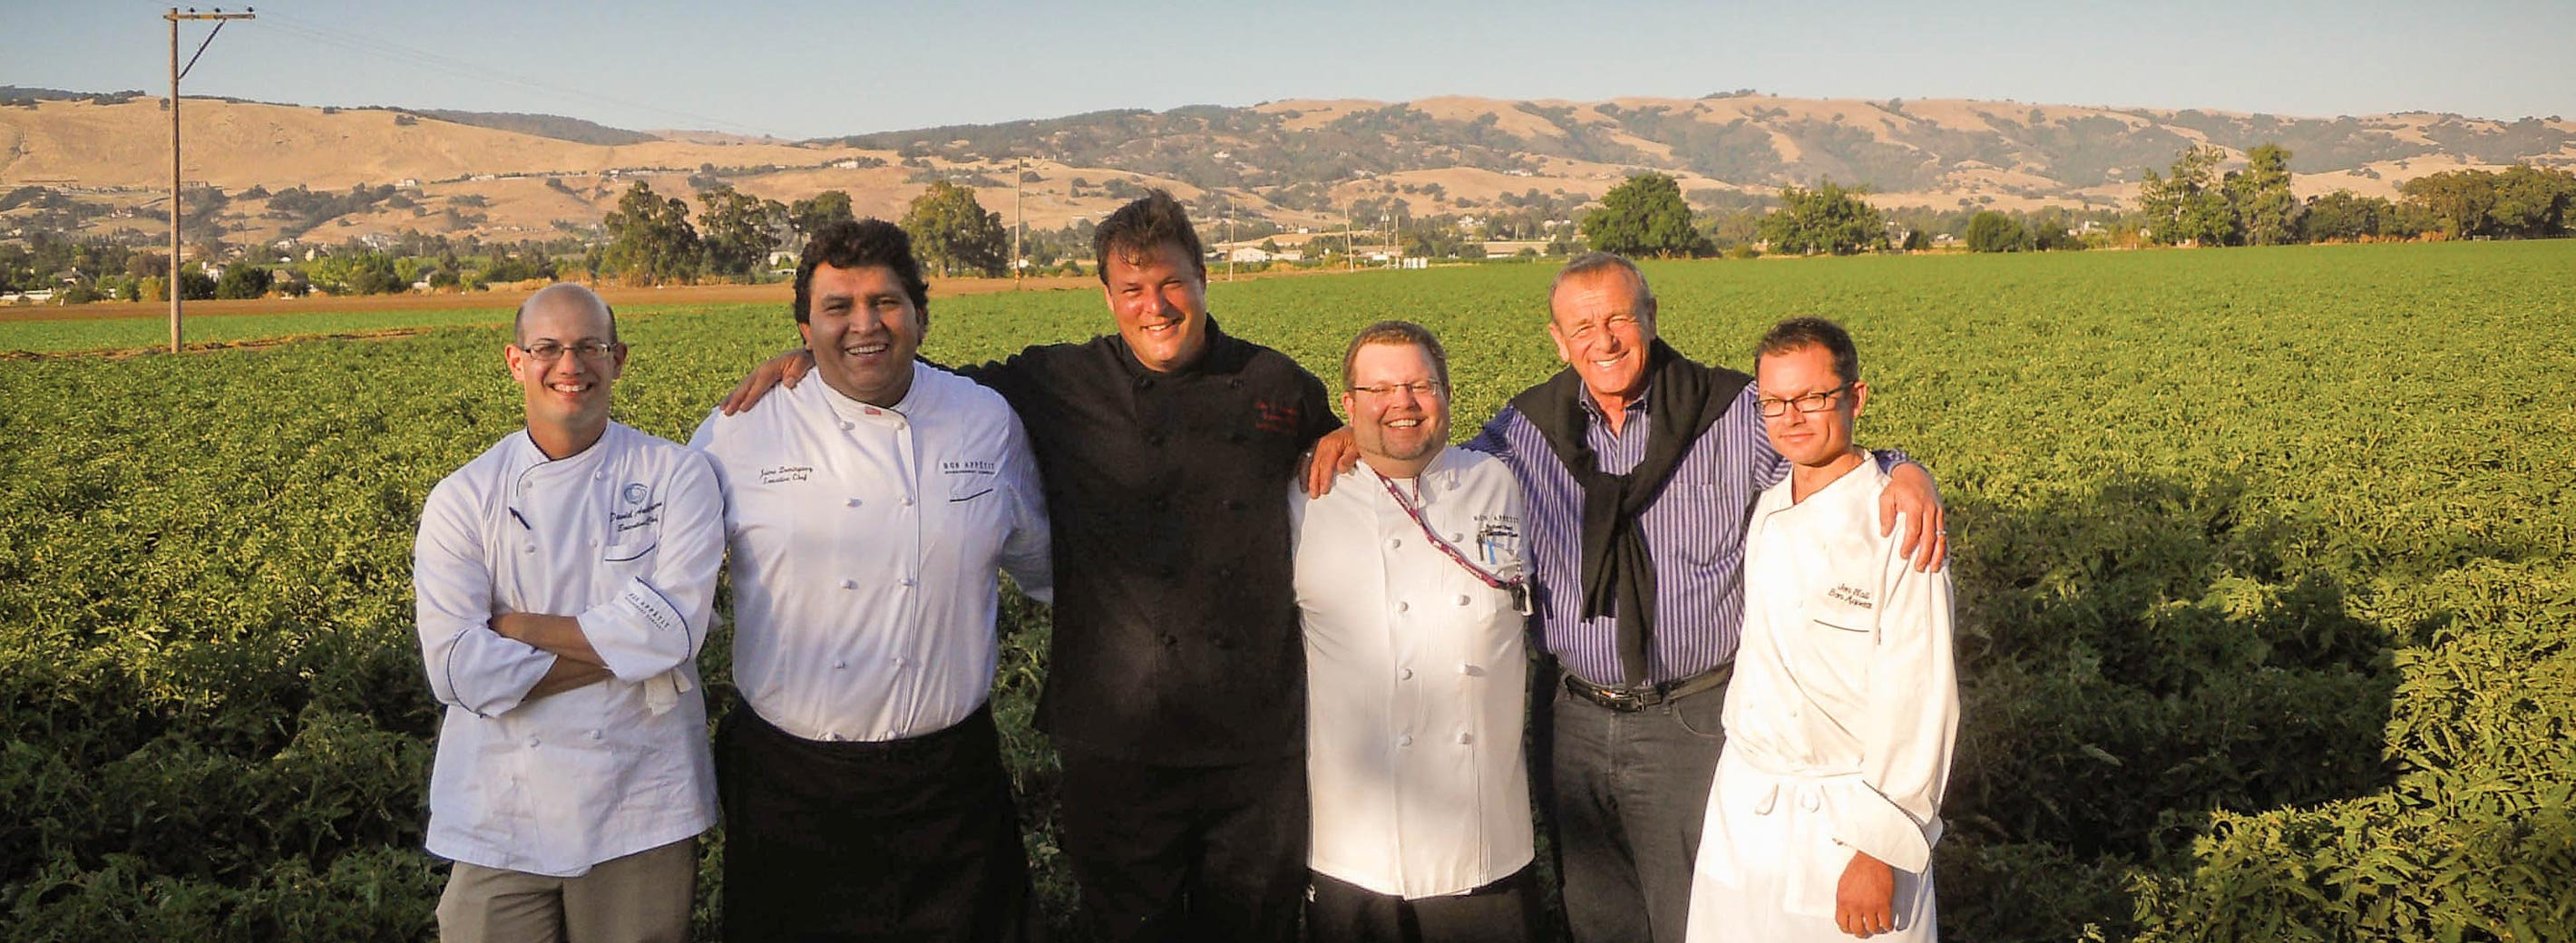 BAMCO chefs and CEO Fedele Bauccio in field